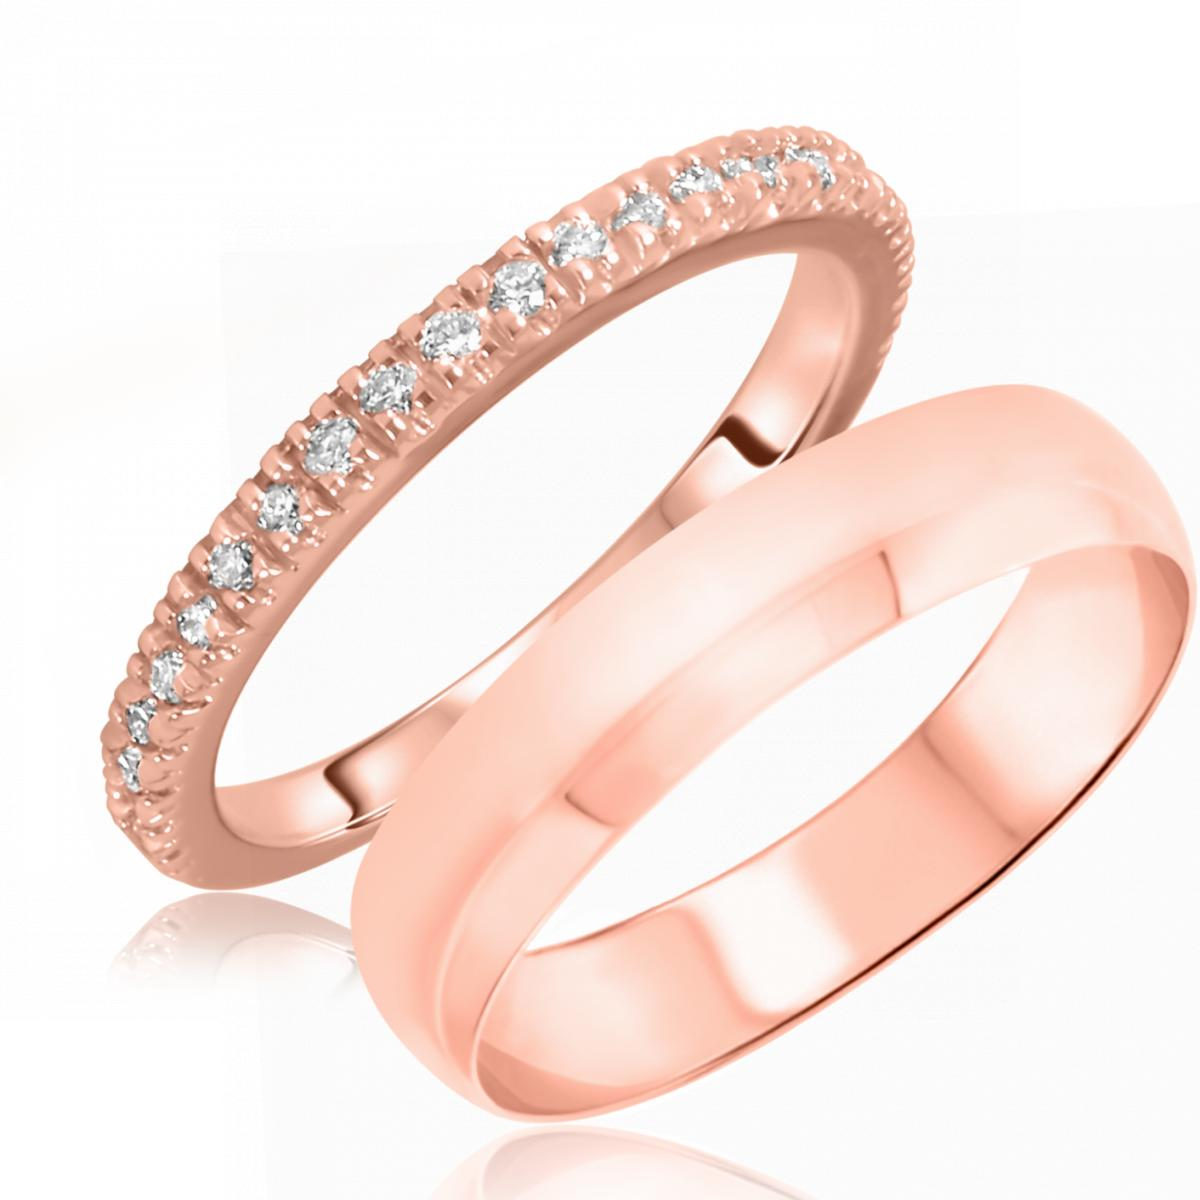 1/4 Carat T.W. Round Cut Diamond His and Hers Wedding Band Set 14K Rose Gold